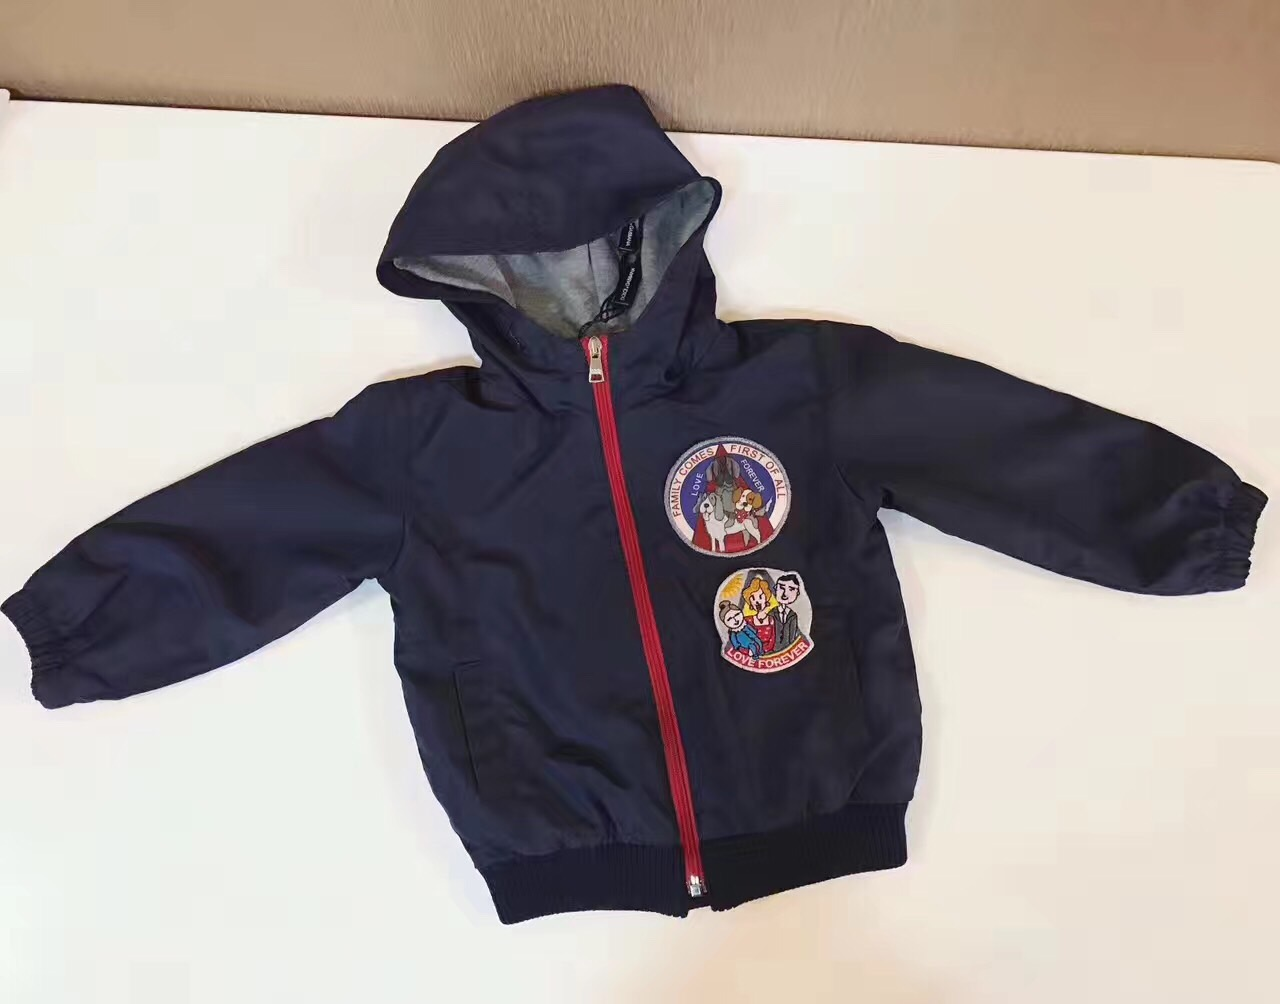 Compare Prices on Boys Navy Jacket- Online Shopping/Buy Low Price ...